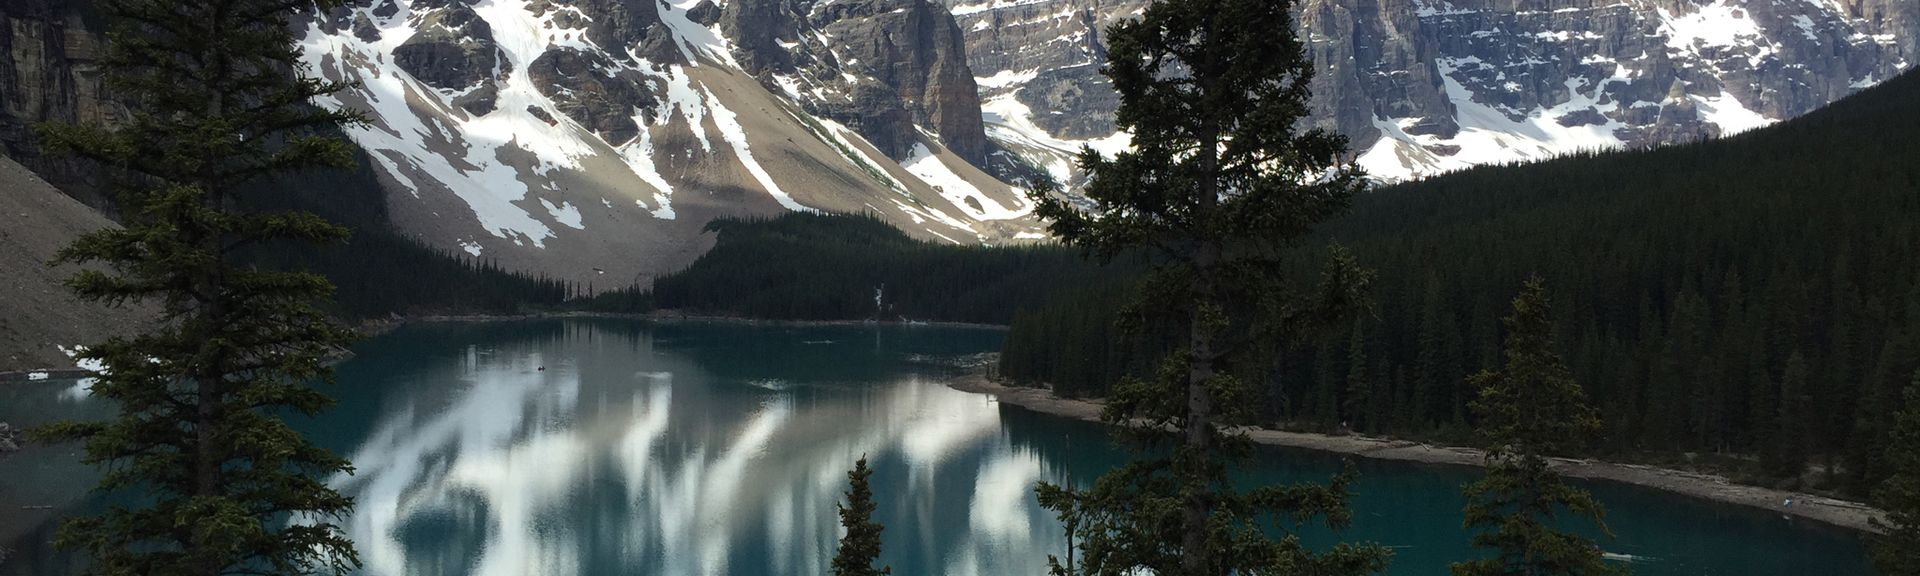 Stoneridge Mountain Resort Canmore (Canmore, Alberta, Canadá)